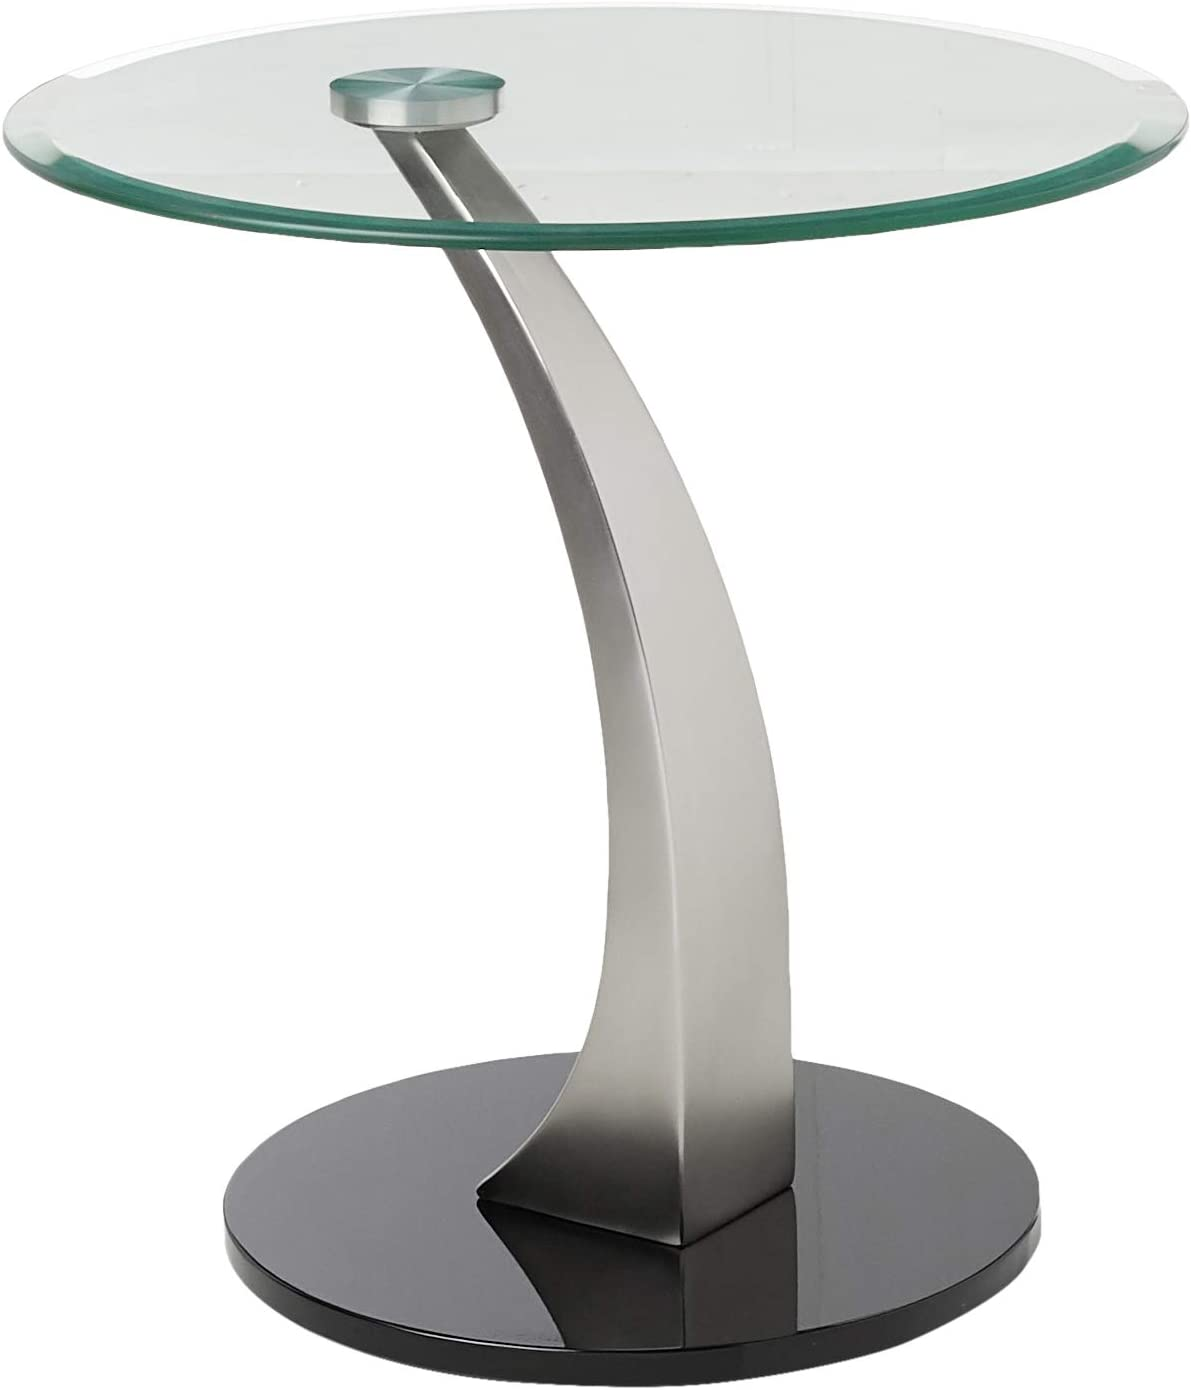 247SHOPATHOME end-tables Oval Coffee Table